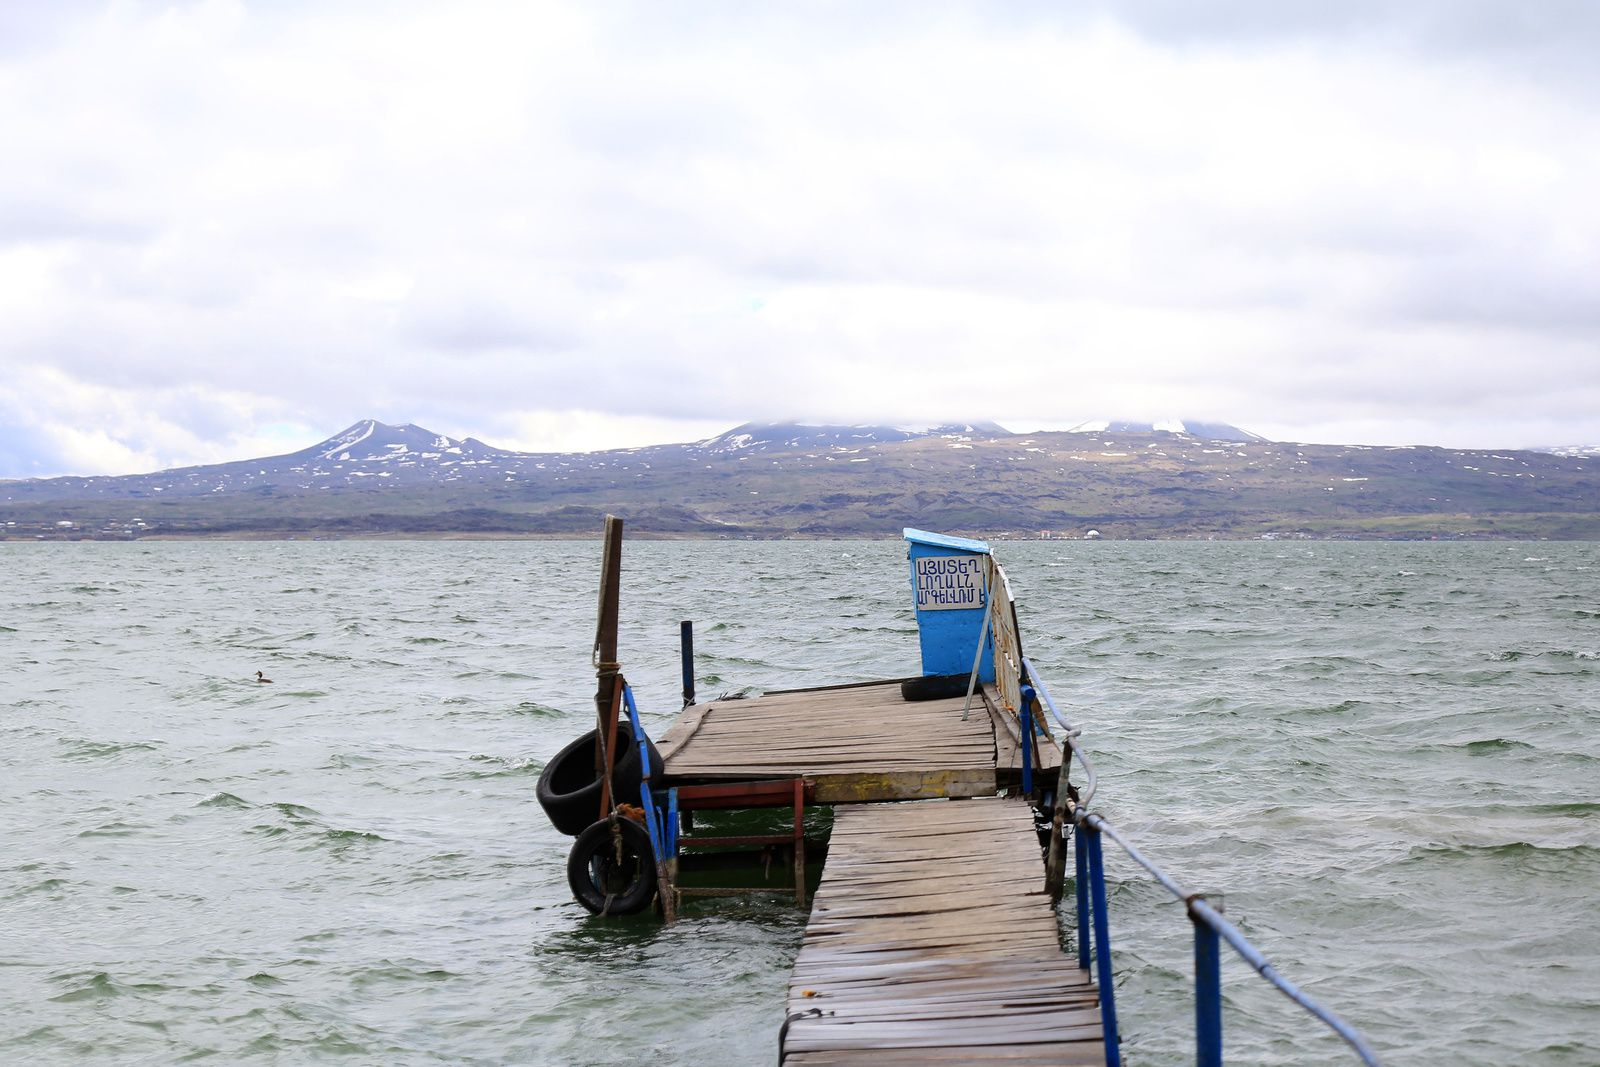 Armenia - Ghegam ridge and Lake Sevan seen from the northeast shore - photo © Bernard Duyck 2019